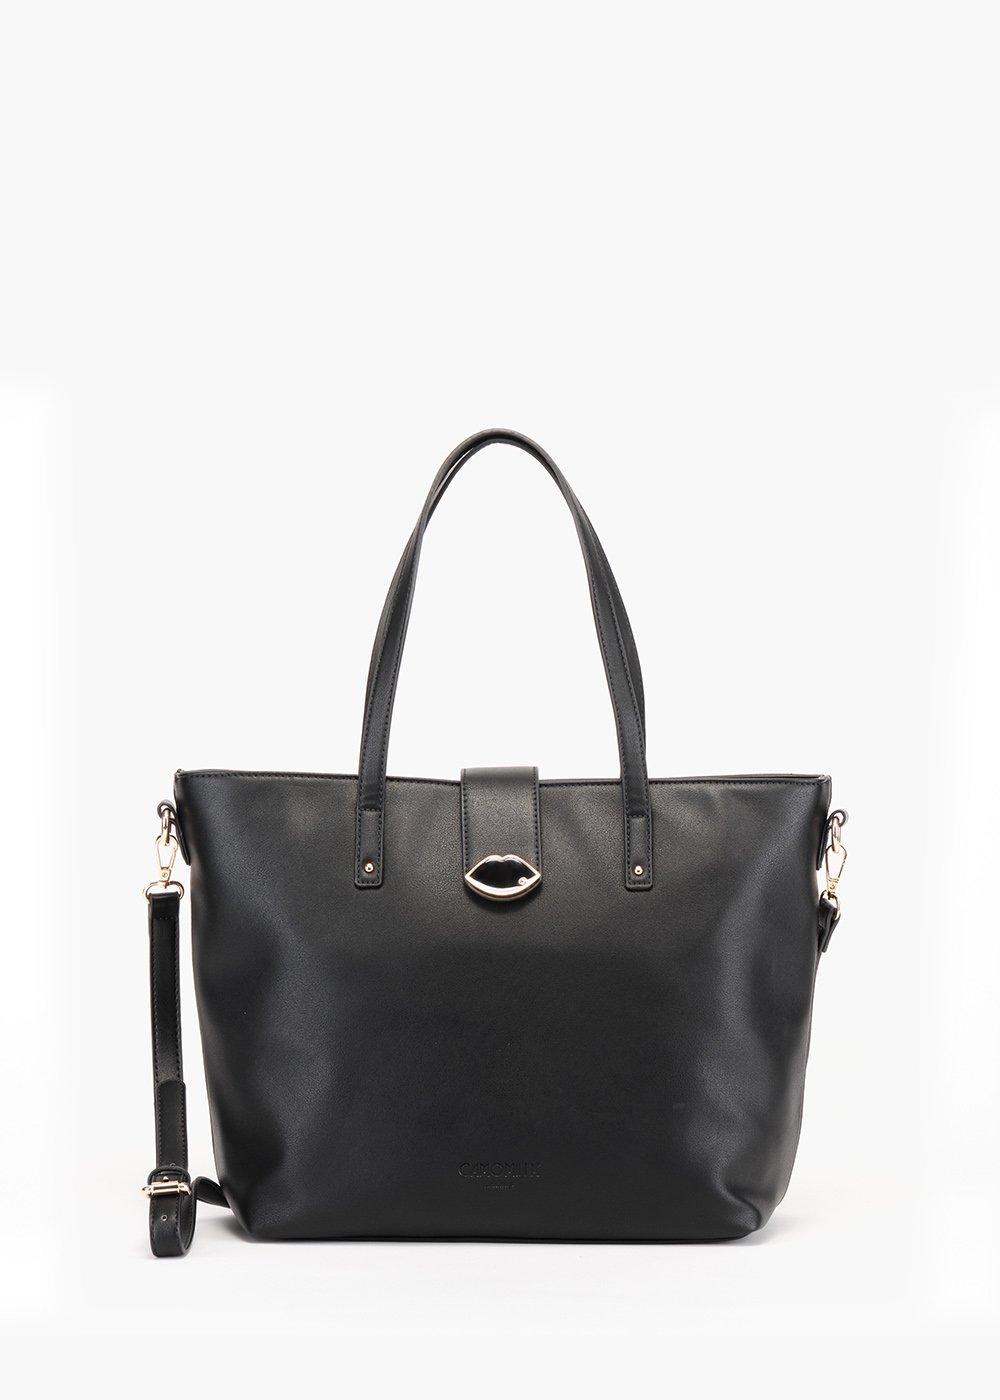 Banny shopping bag in eco leather with zip closure - Black - Woman